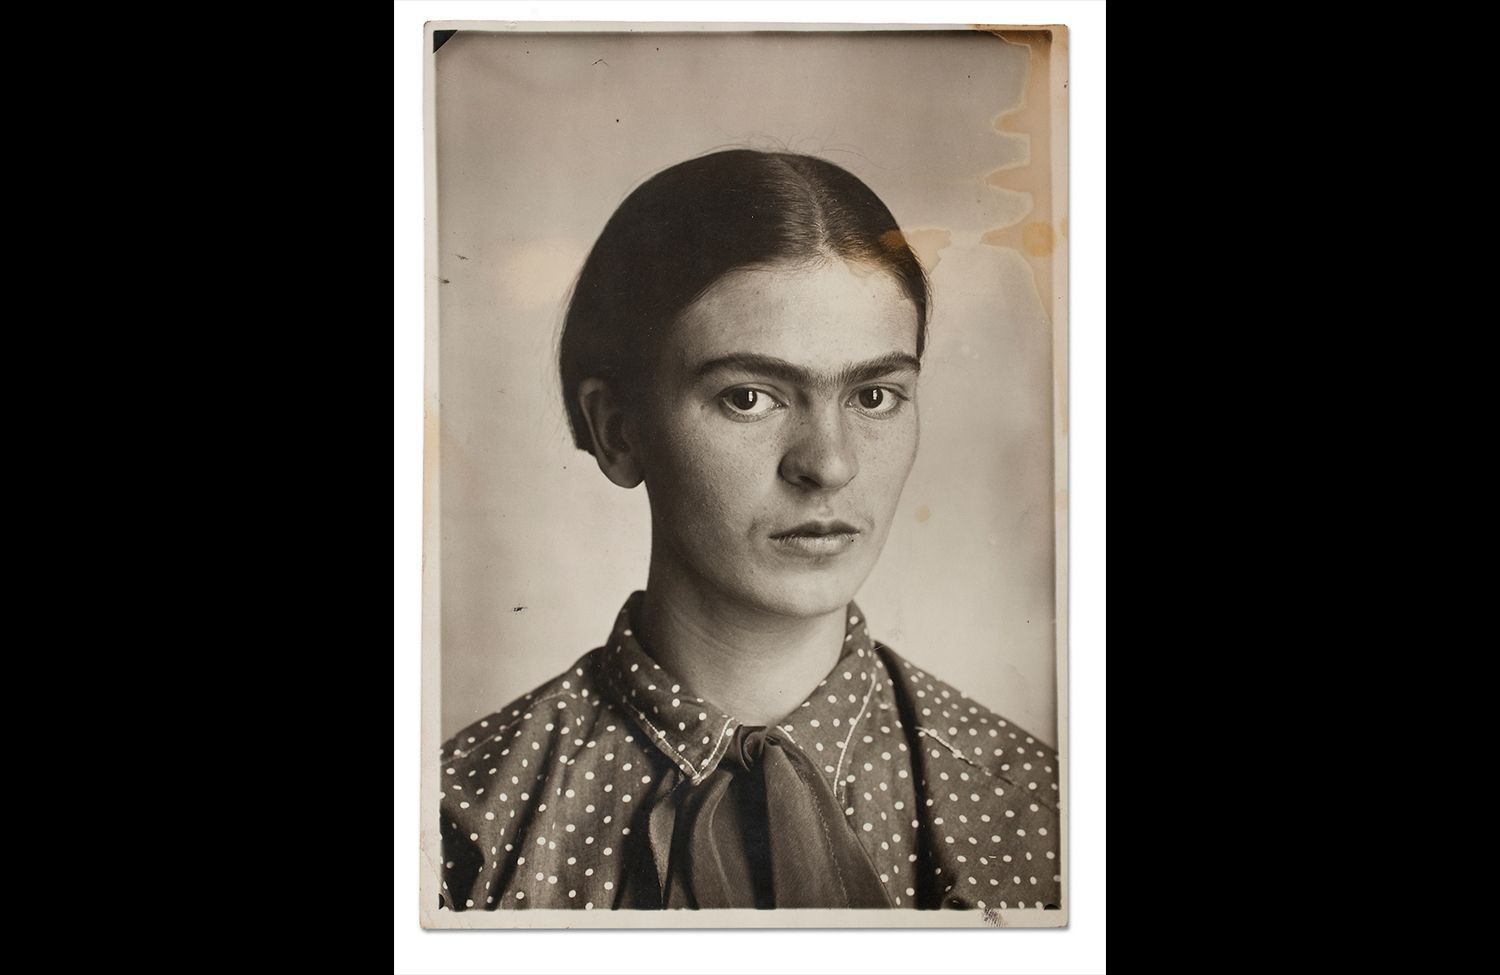 Frida Kahlo: Appearances Can Be Deceiving 10